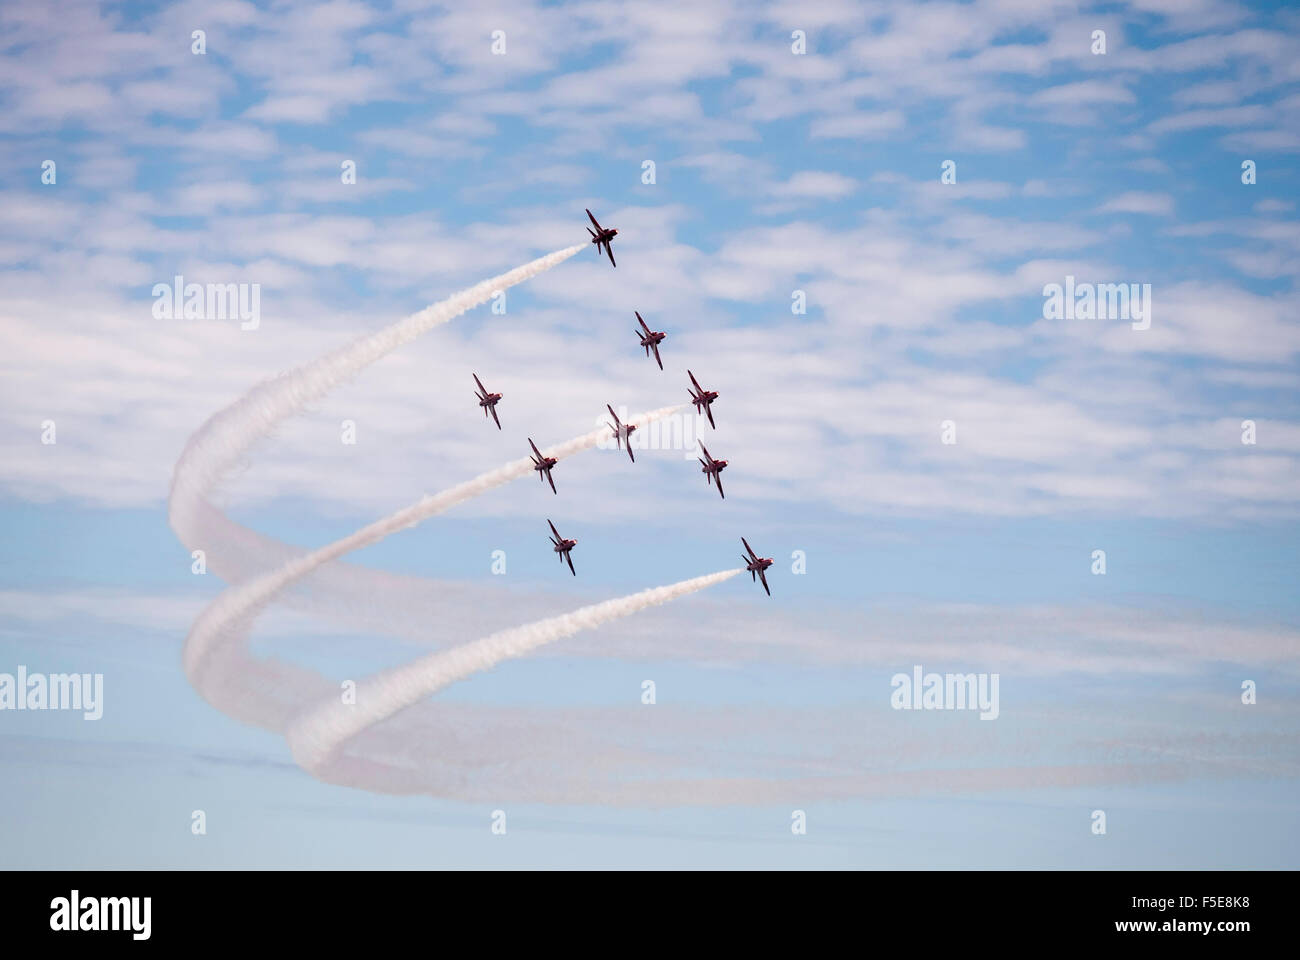 Red Arrows display team at Bournemouth Air Festival commemorating the Battle of Britain, Bournemouth, Dorset, England, - Stock Image